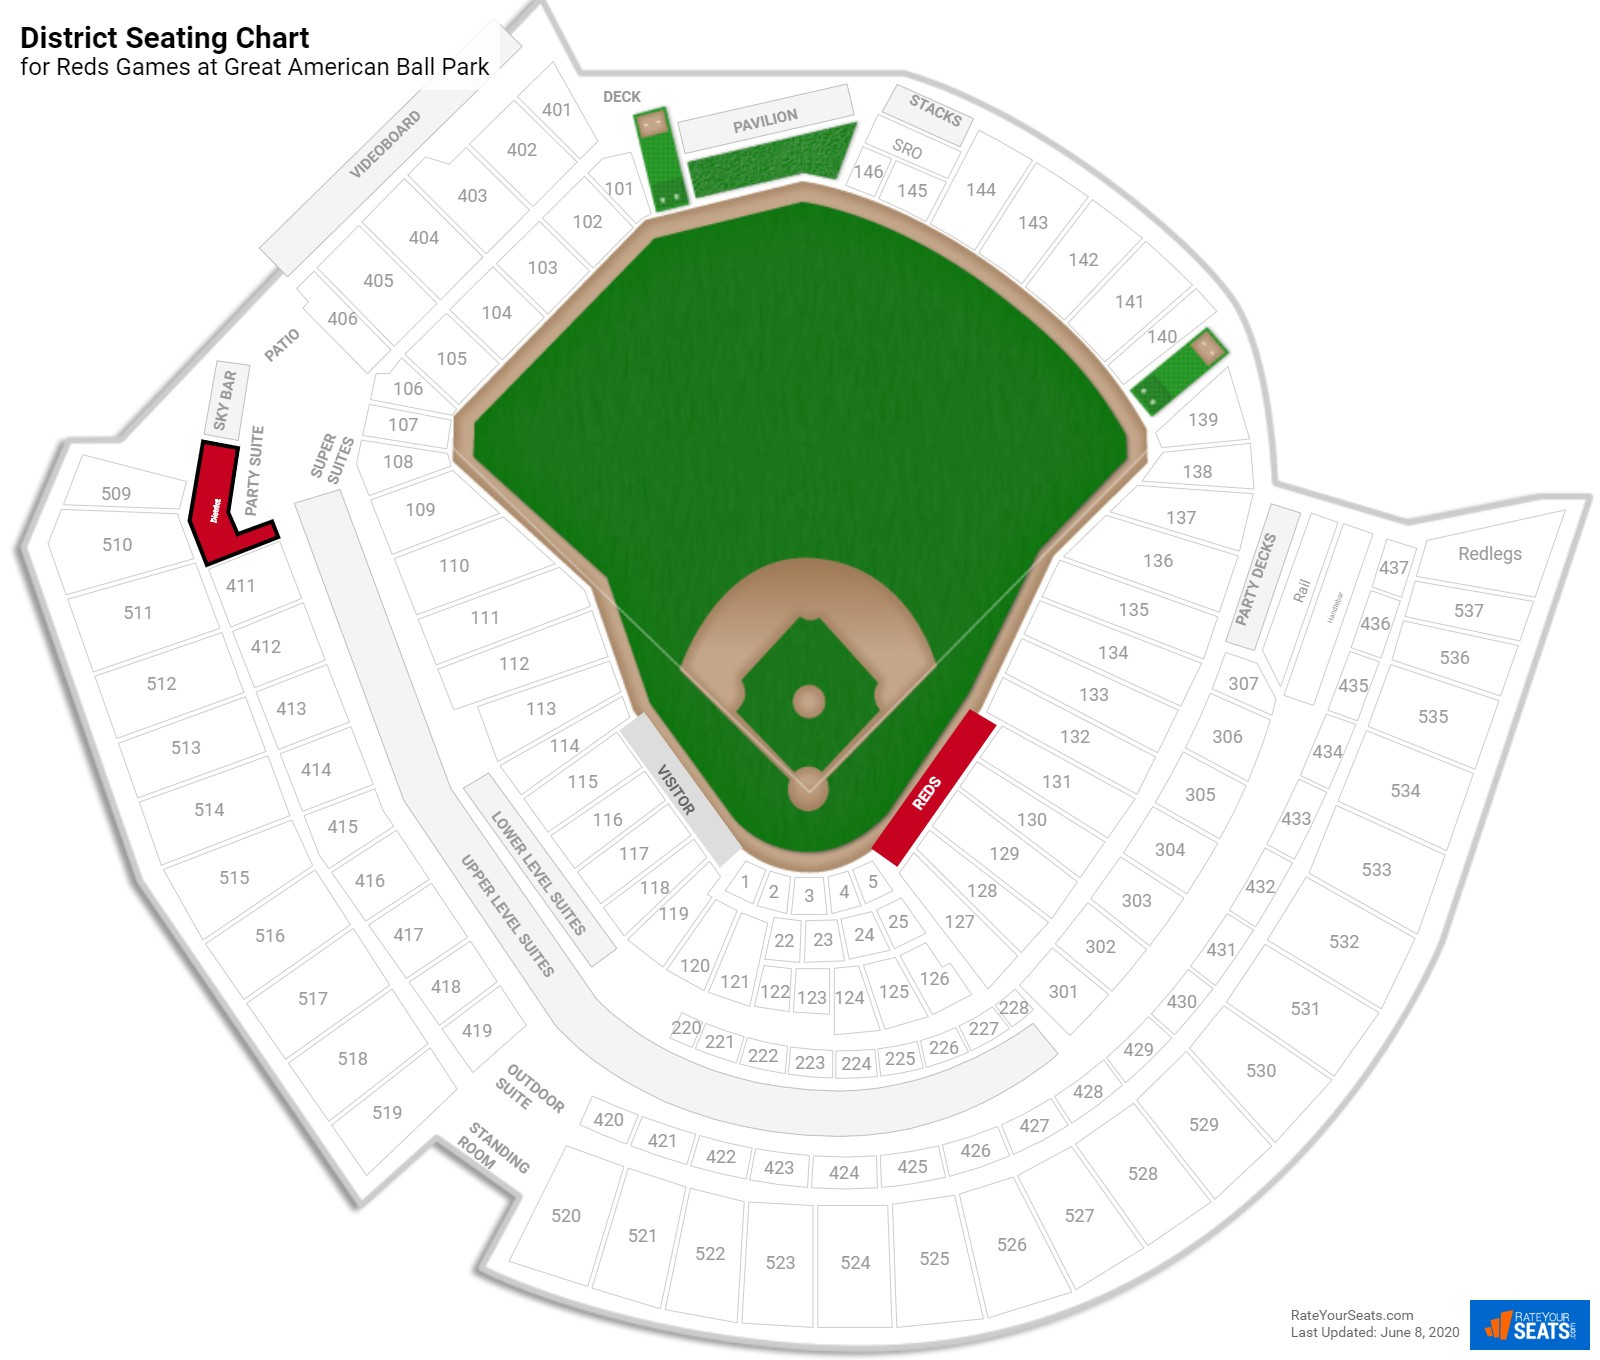 Great American Ball Park District seating chart